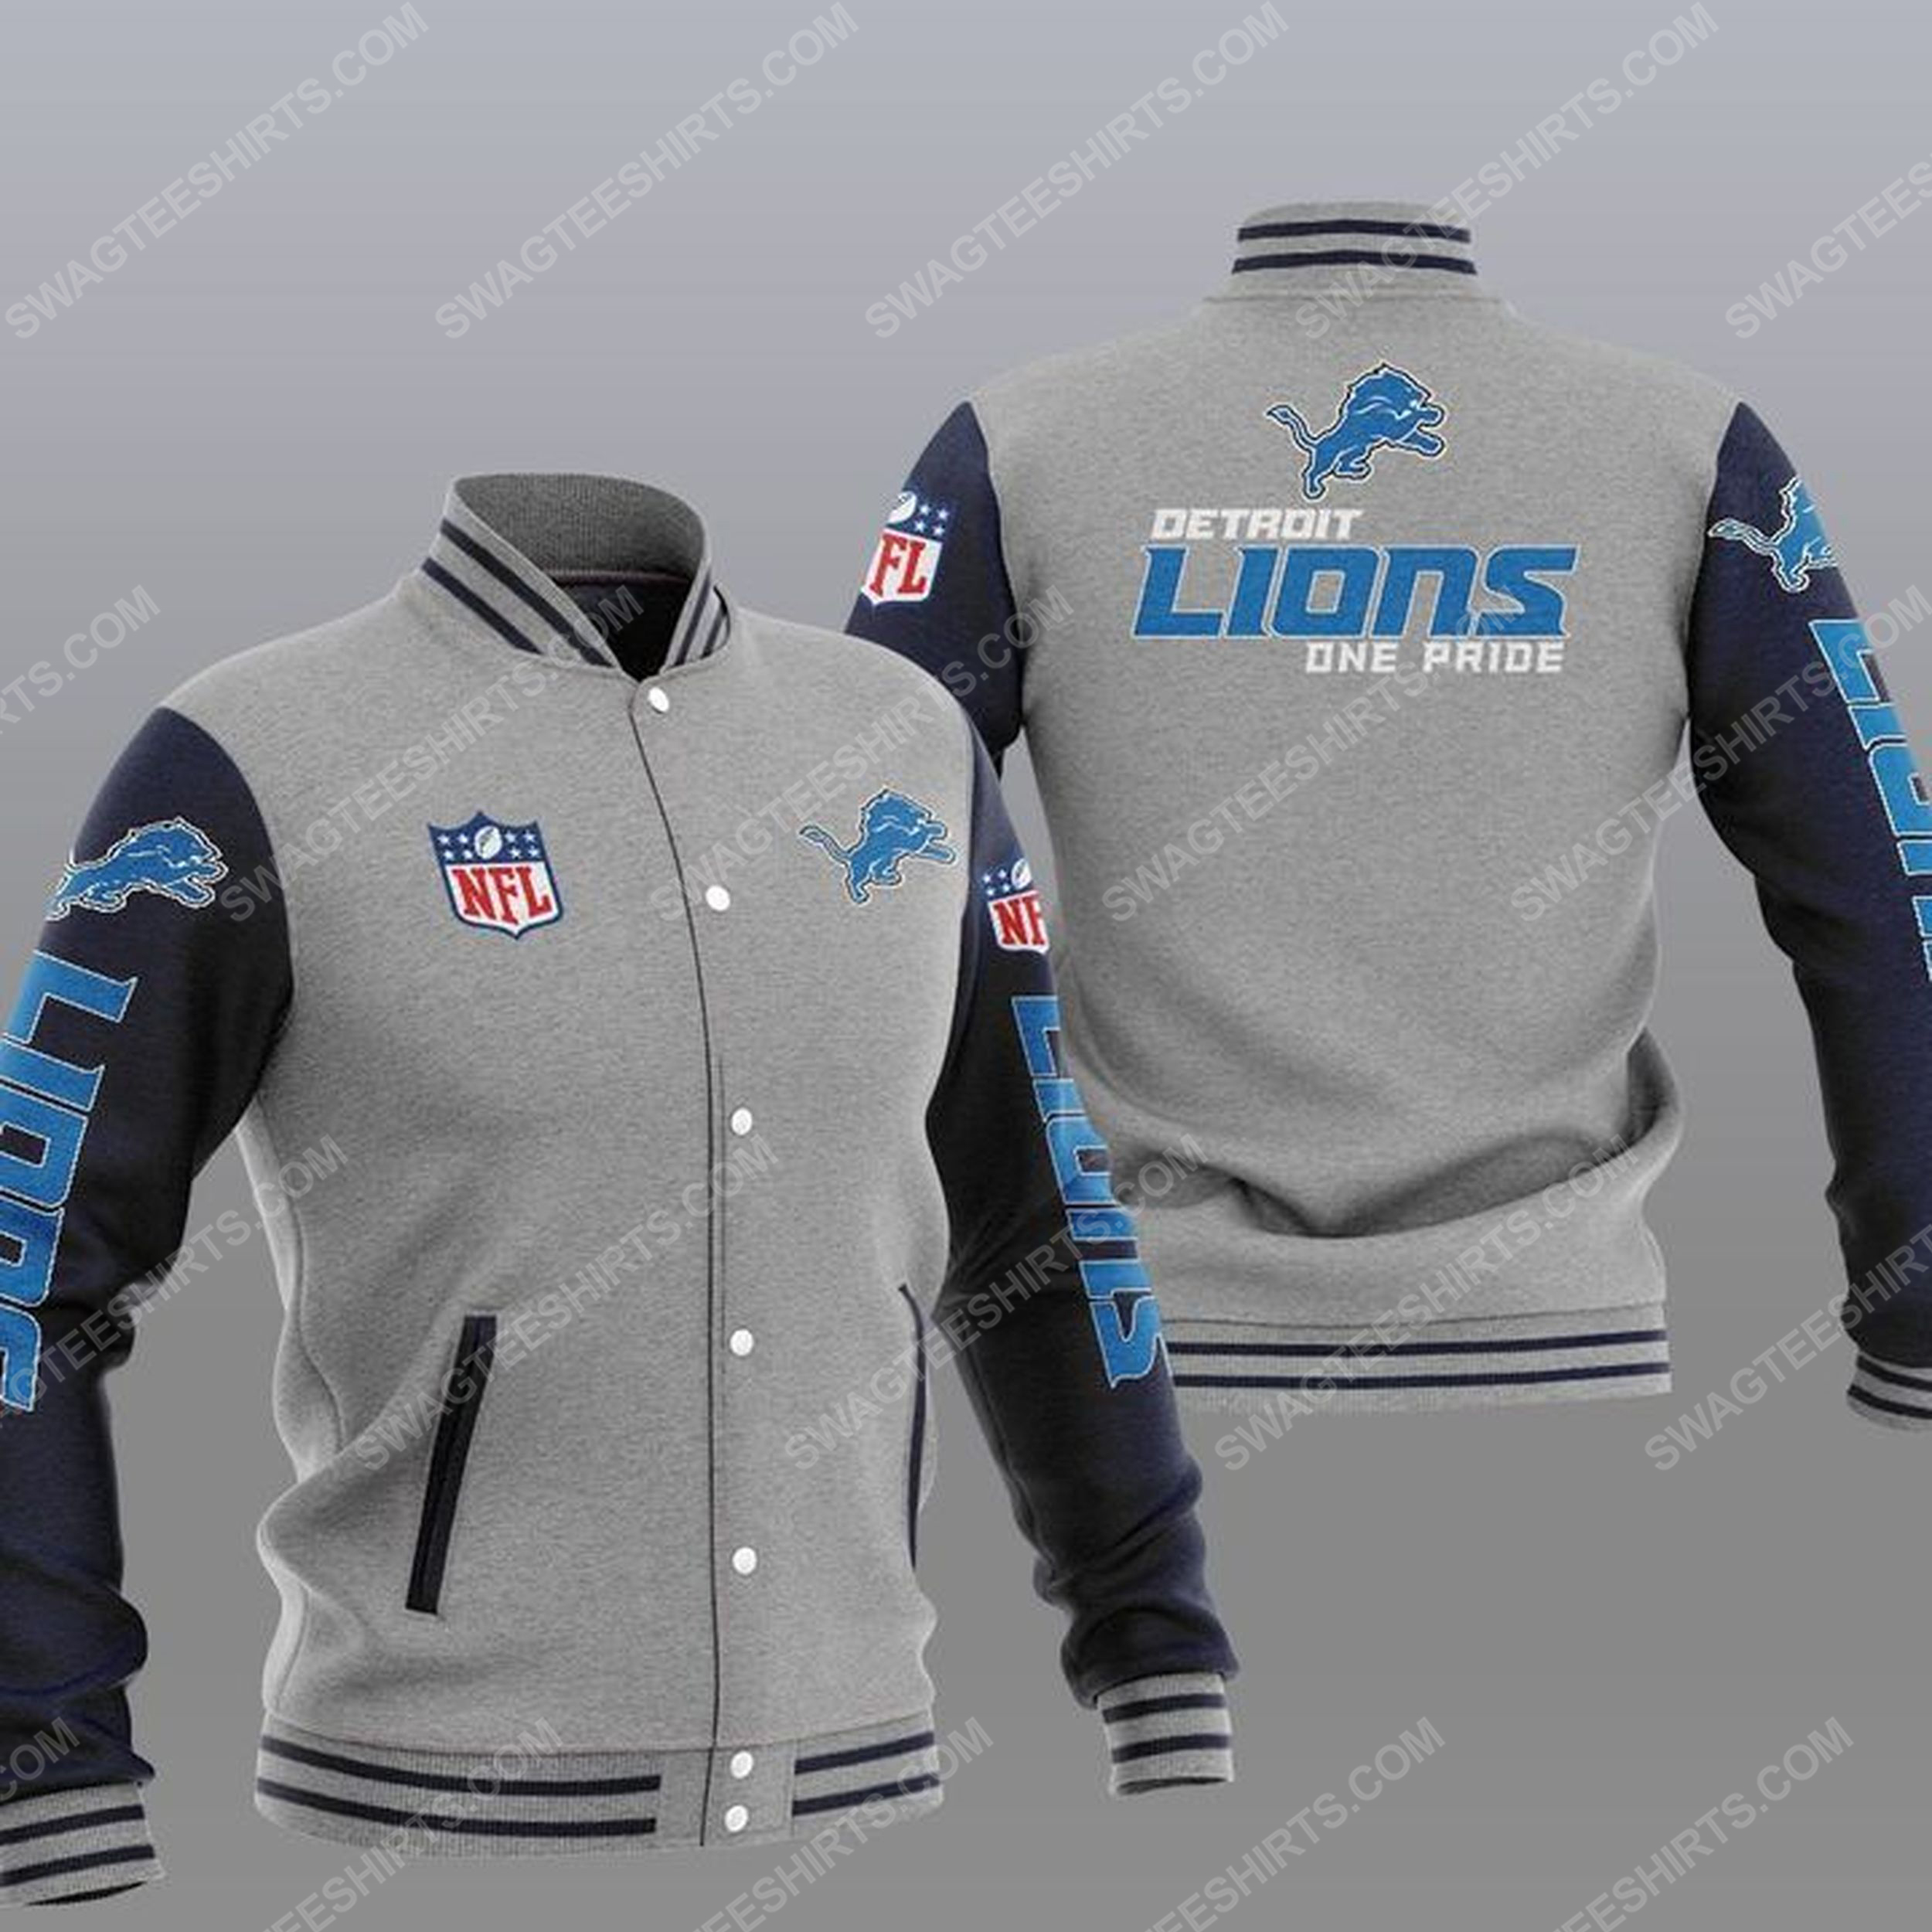 Detroit lions one pride all over print baseball jacket - gray 1